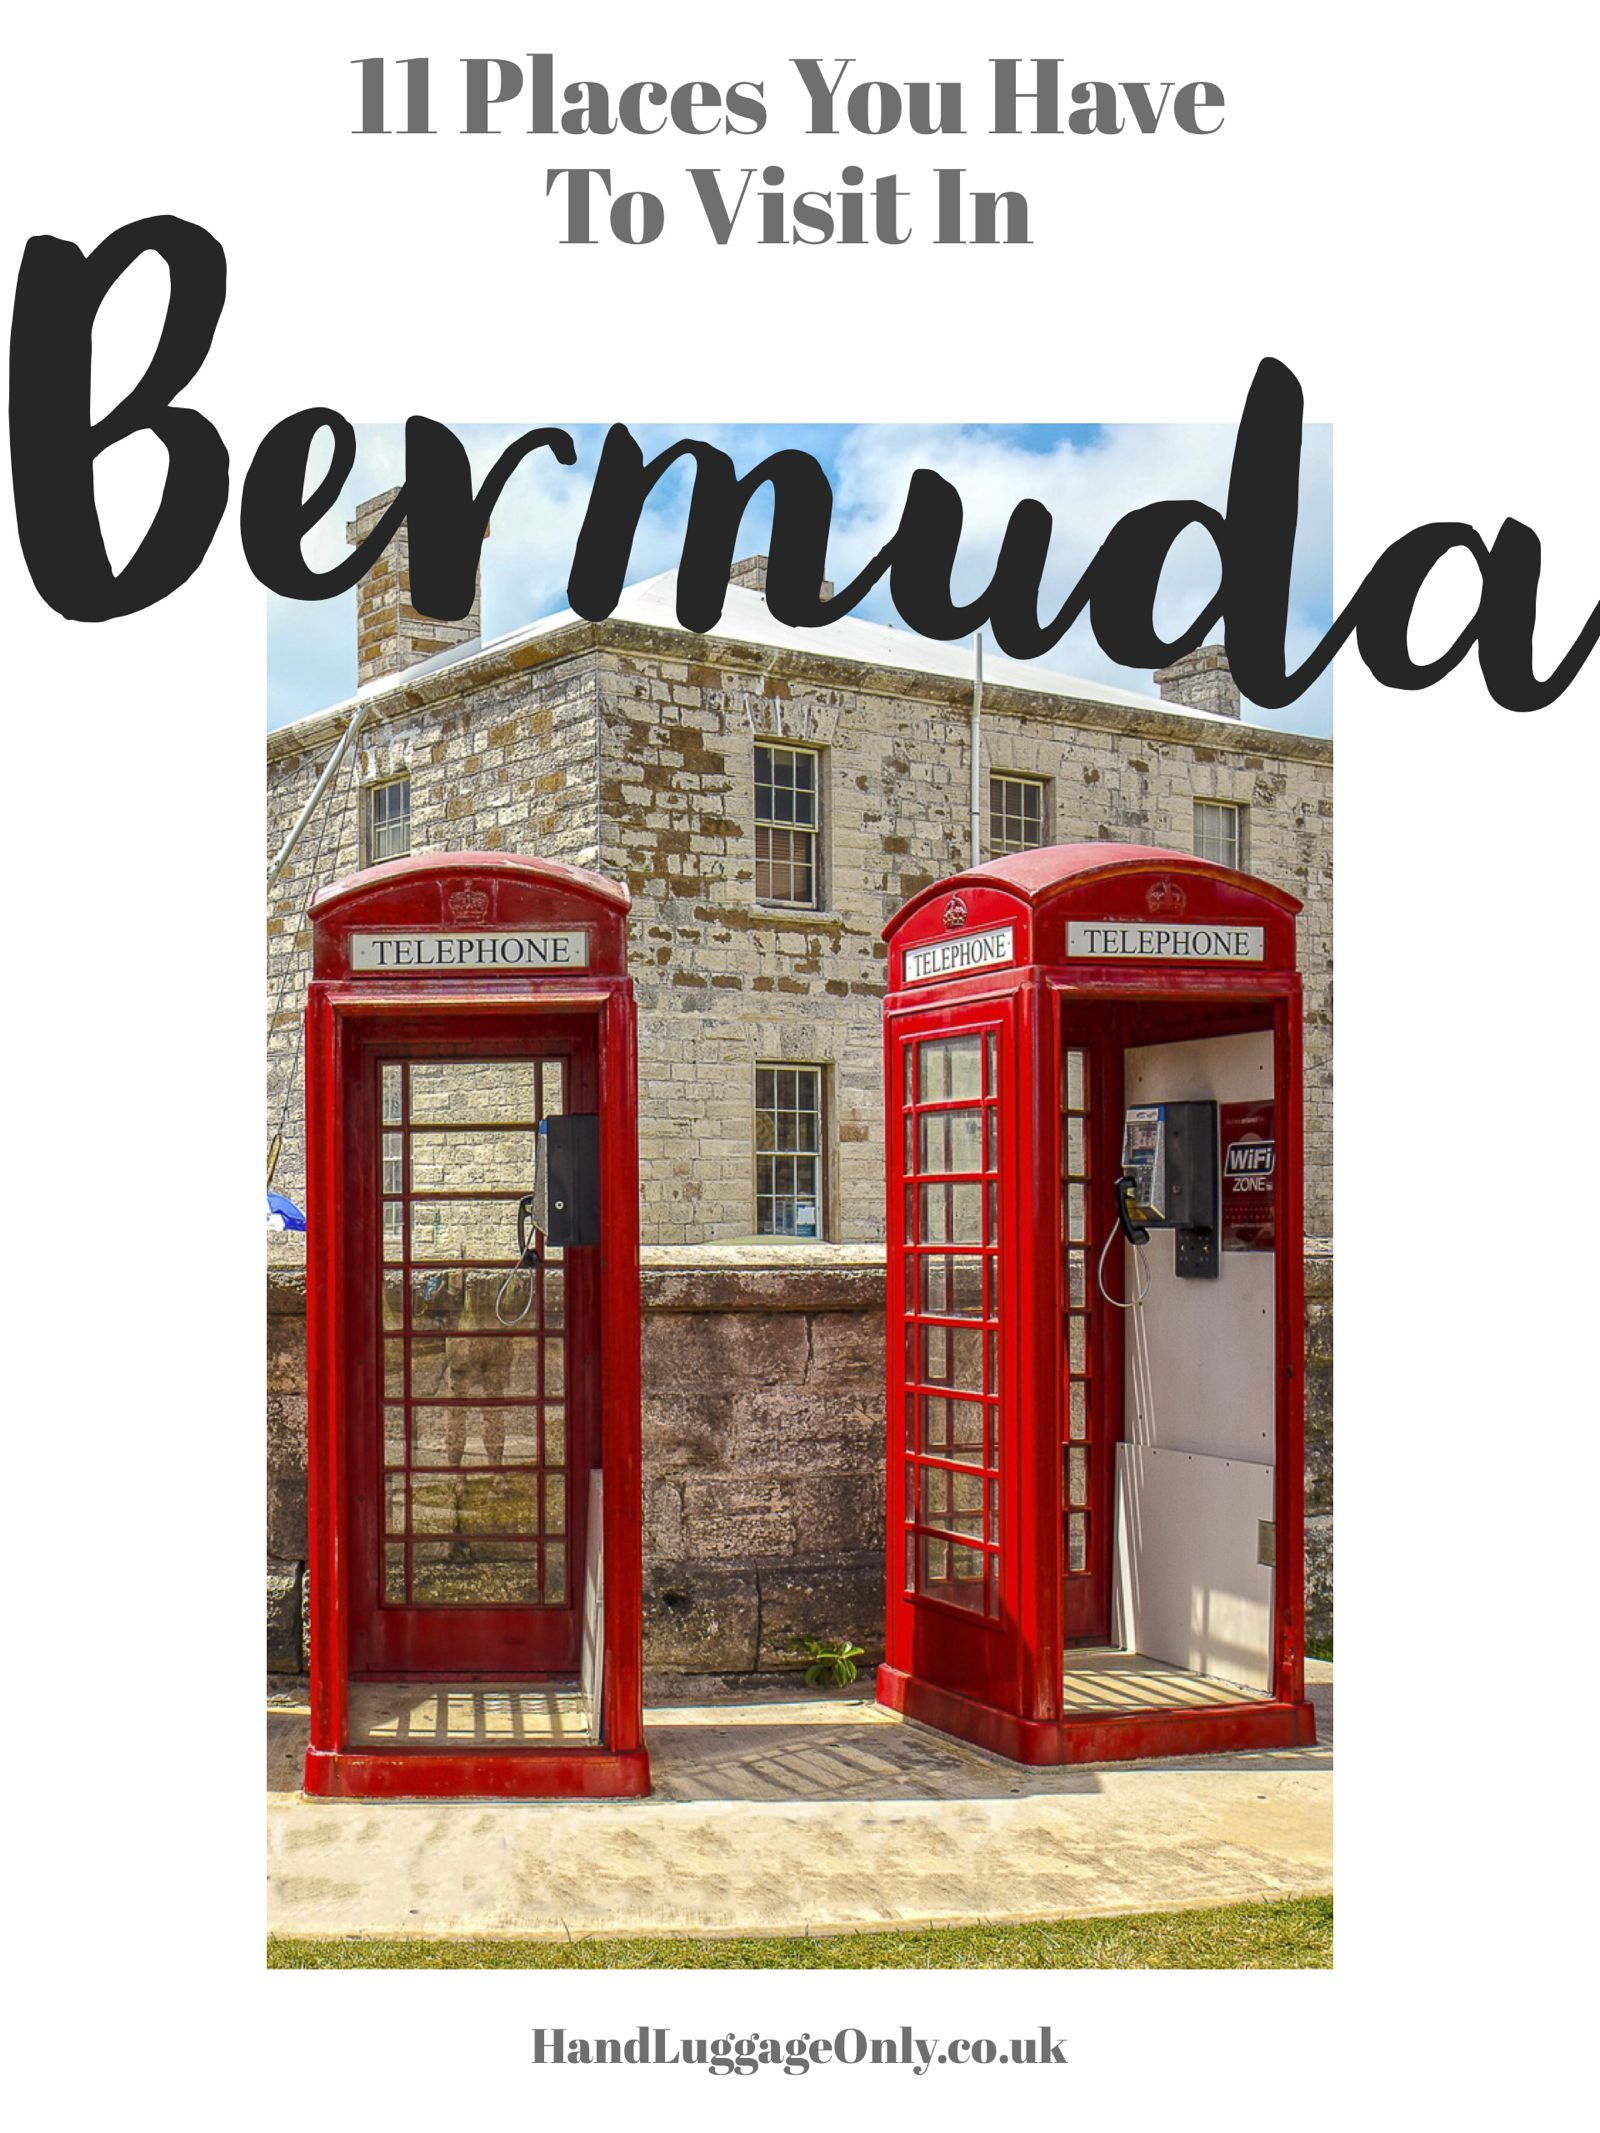 11 Things You Have To See and Do When Visiting Bermuda (14)